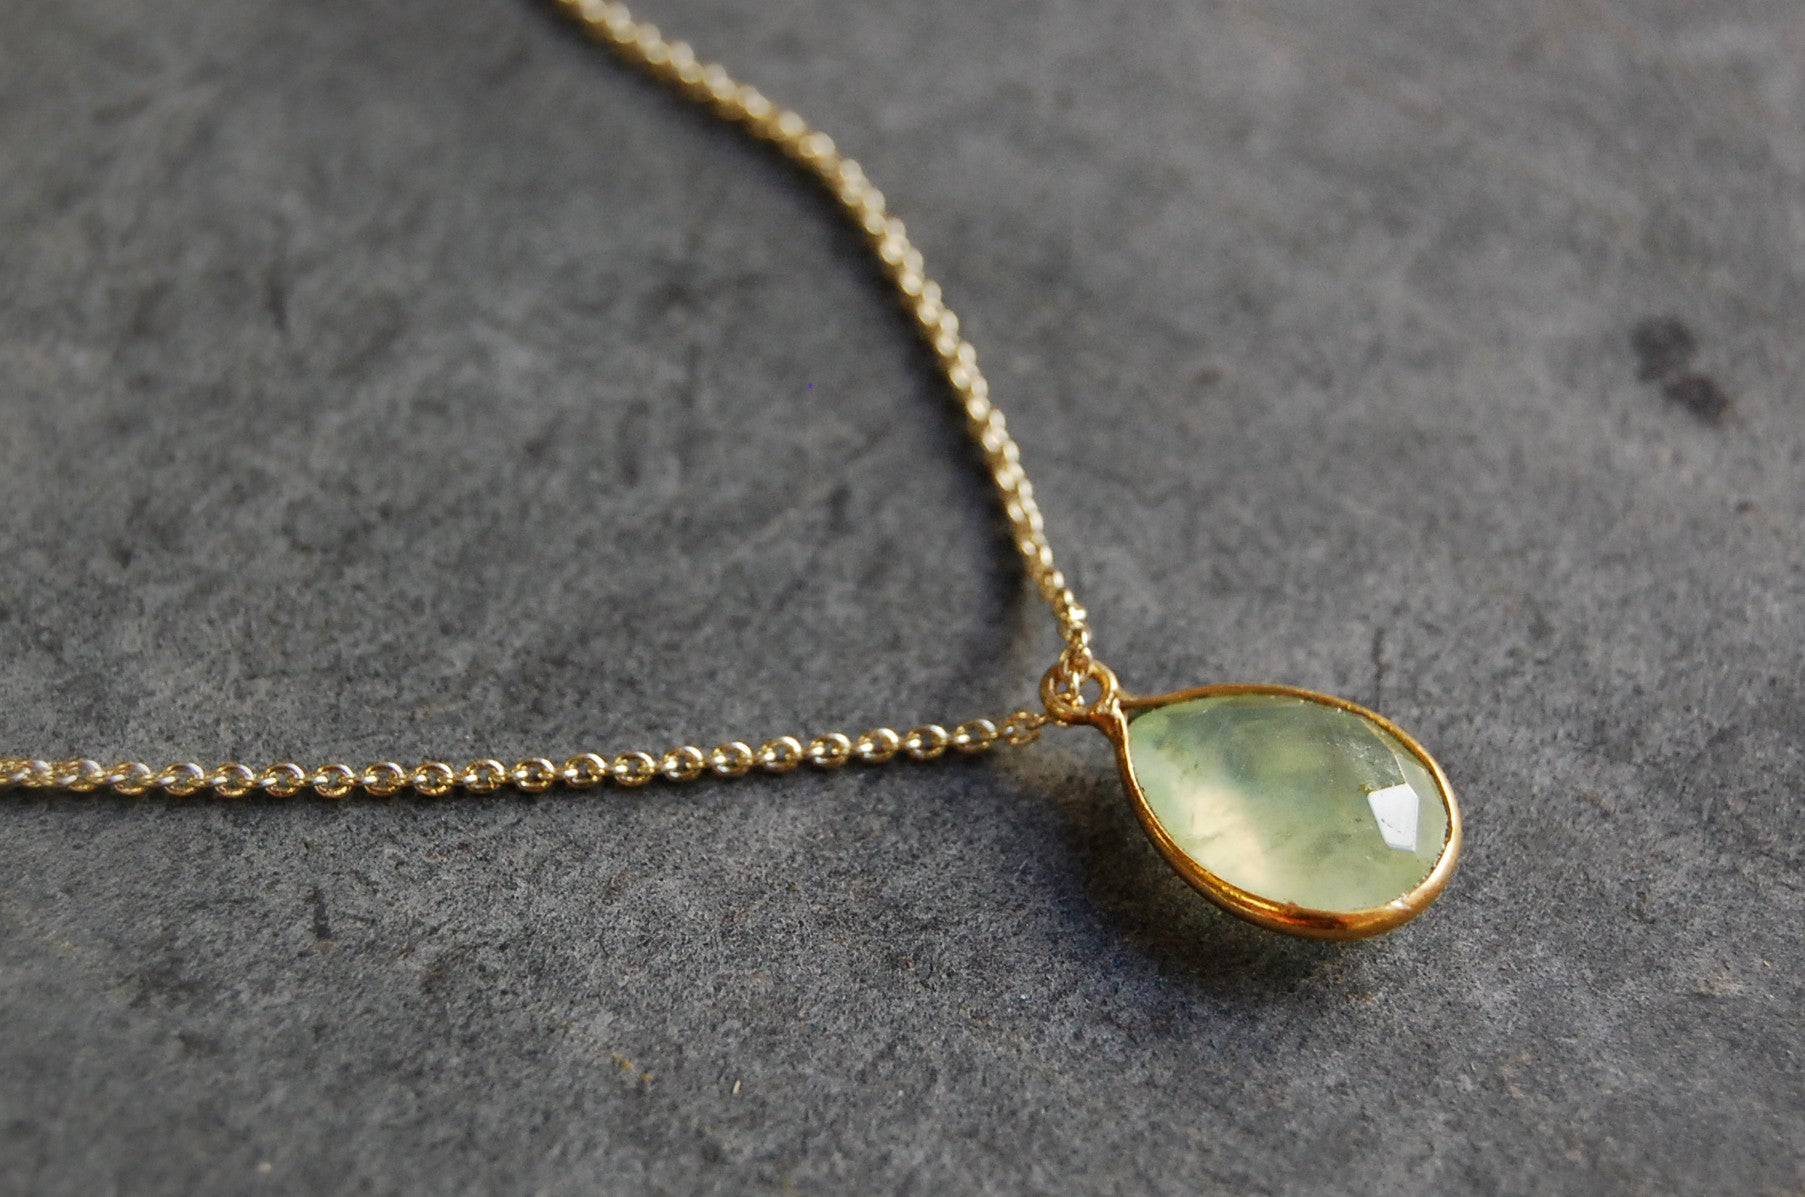 Prehnite stone pendant necklace